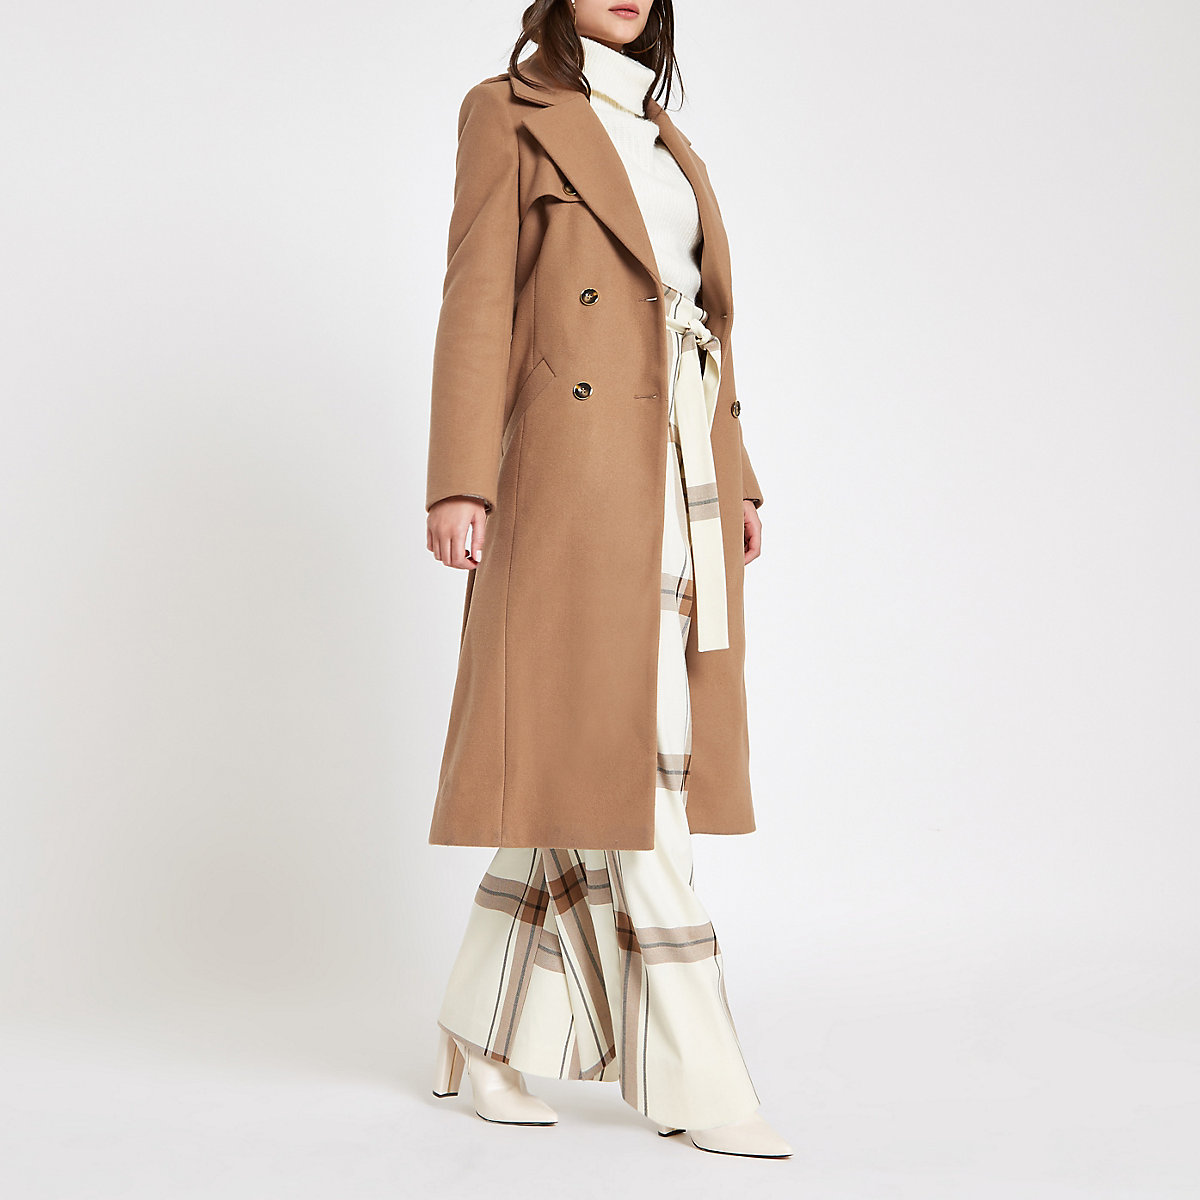 Light brown belted trench coat